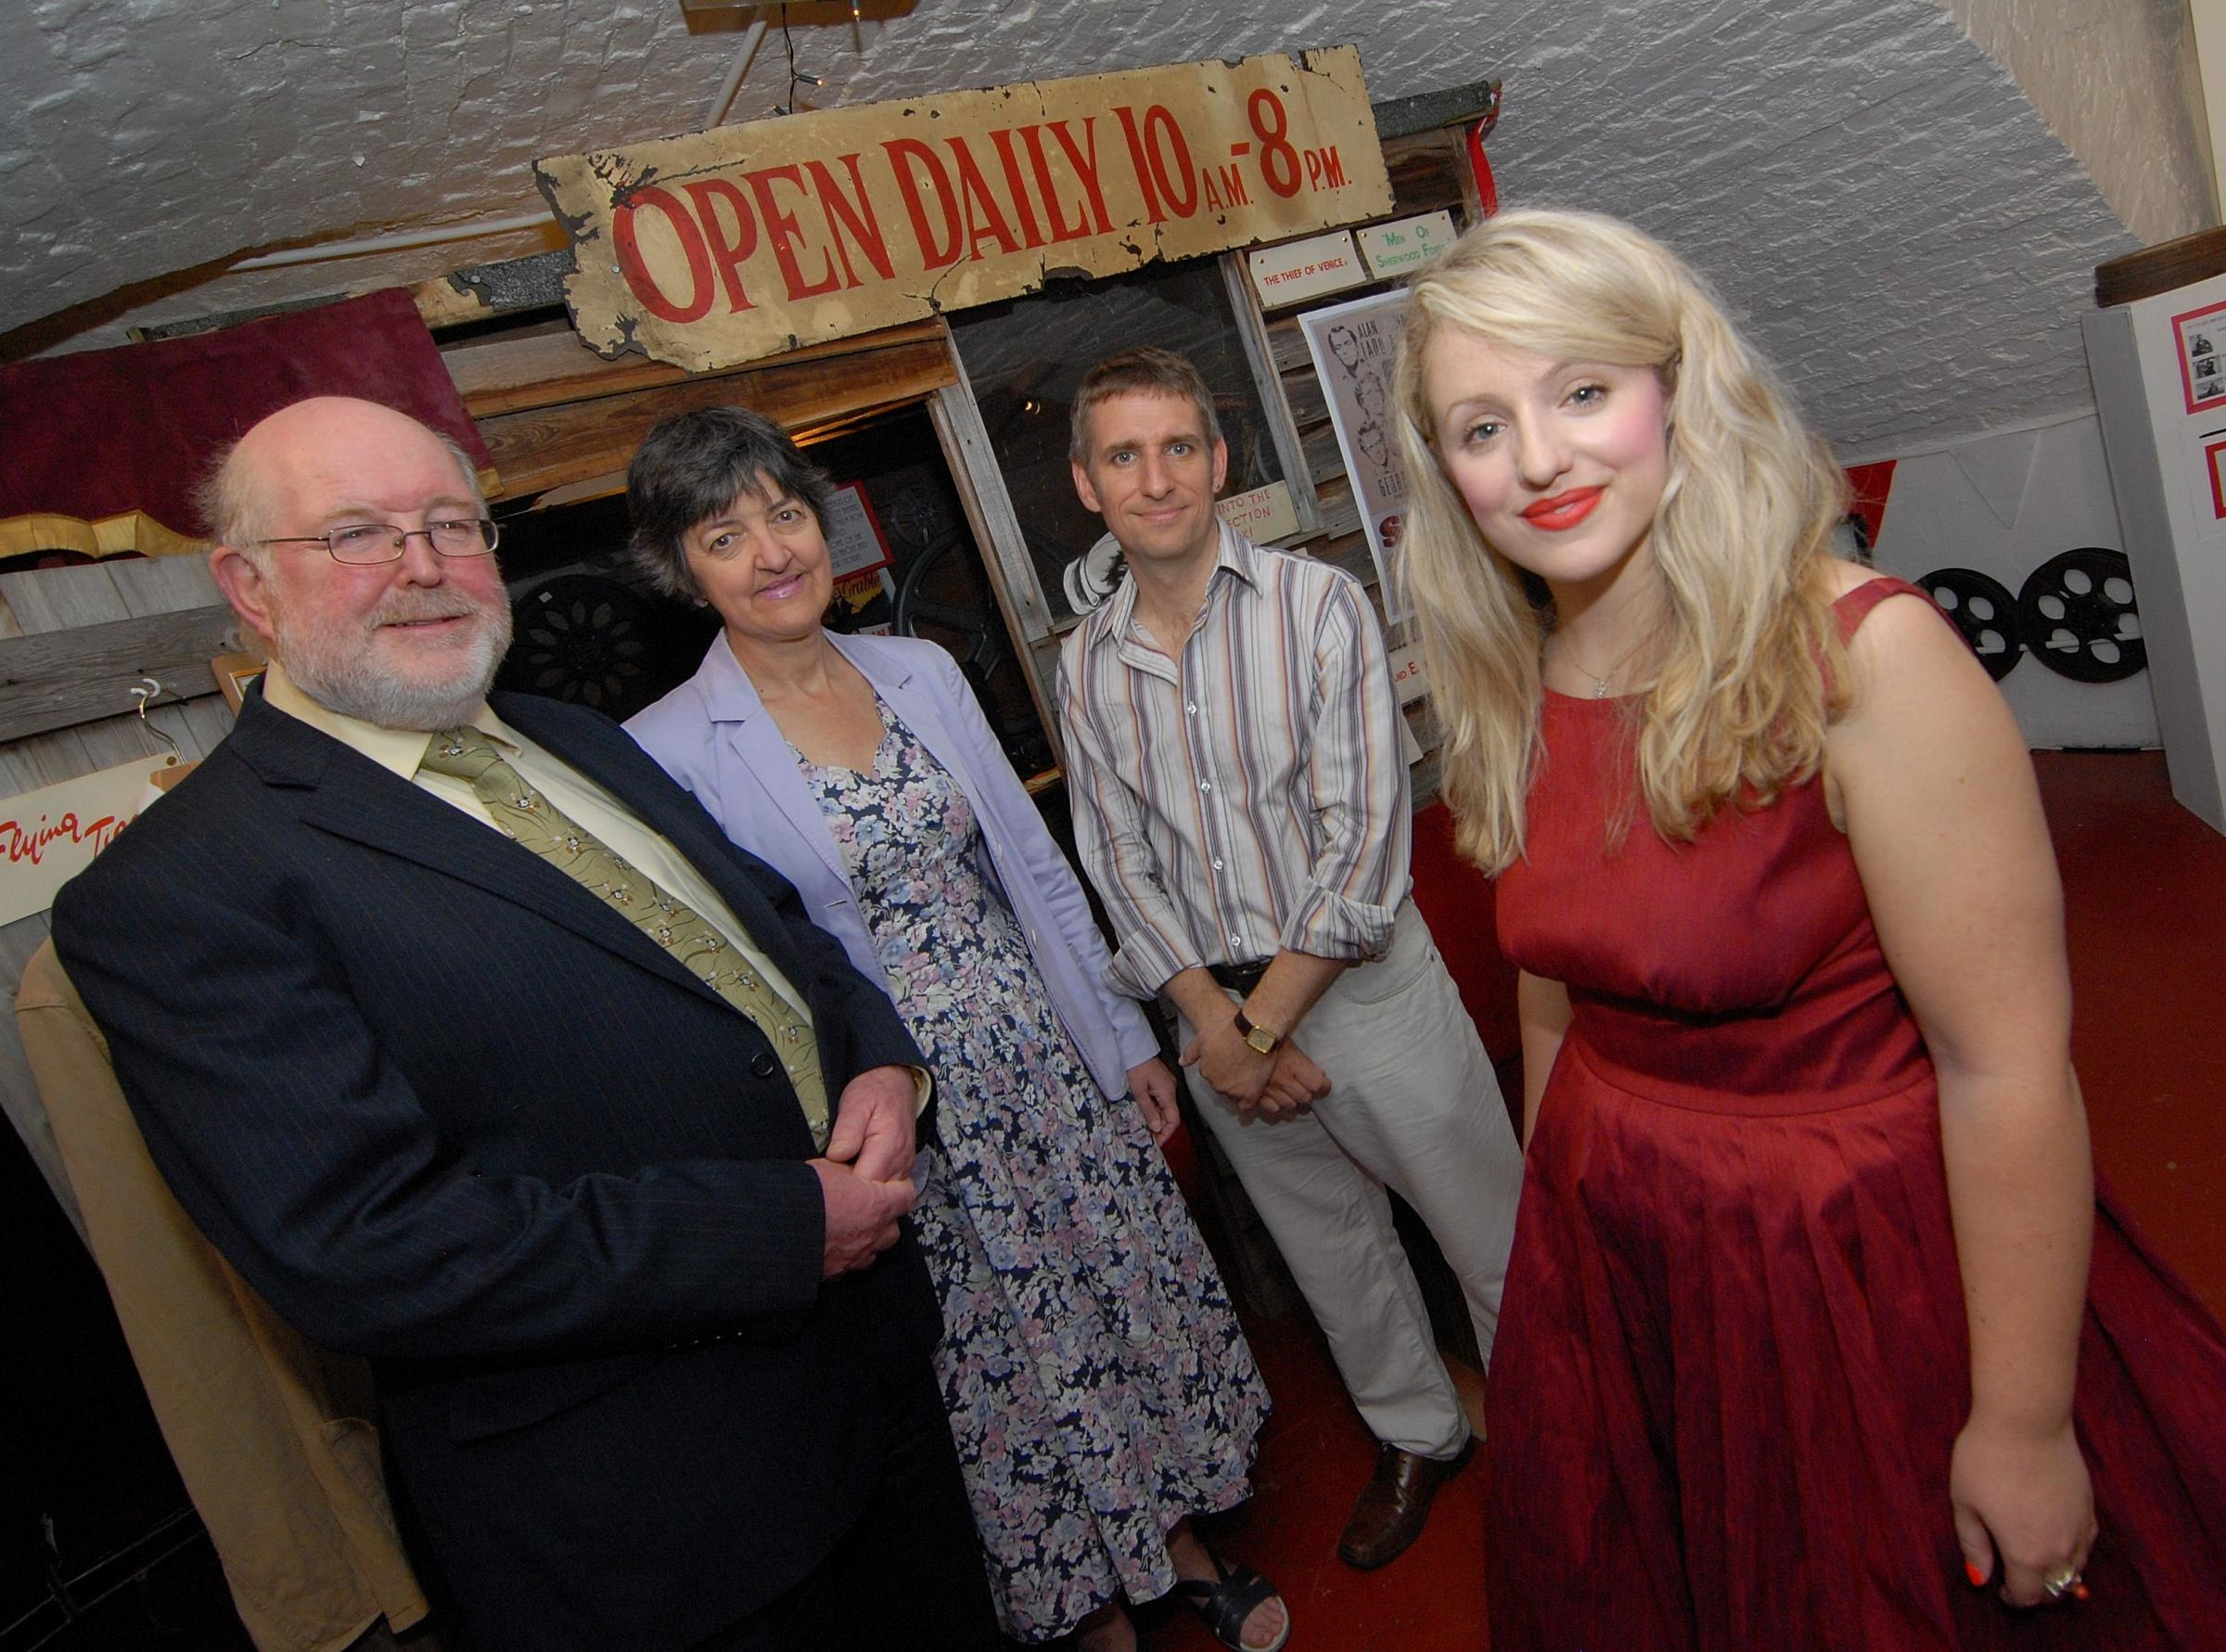 Experience 1950s cinema at exhibition